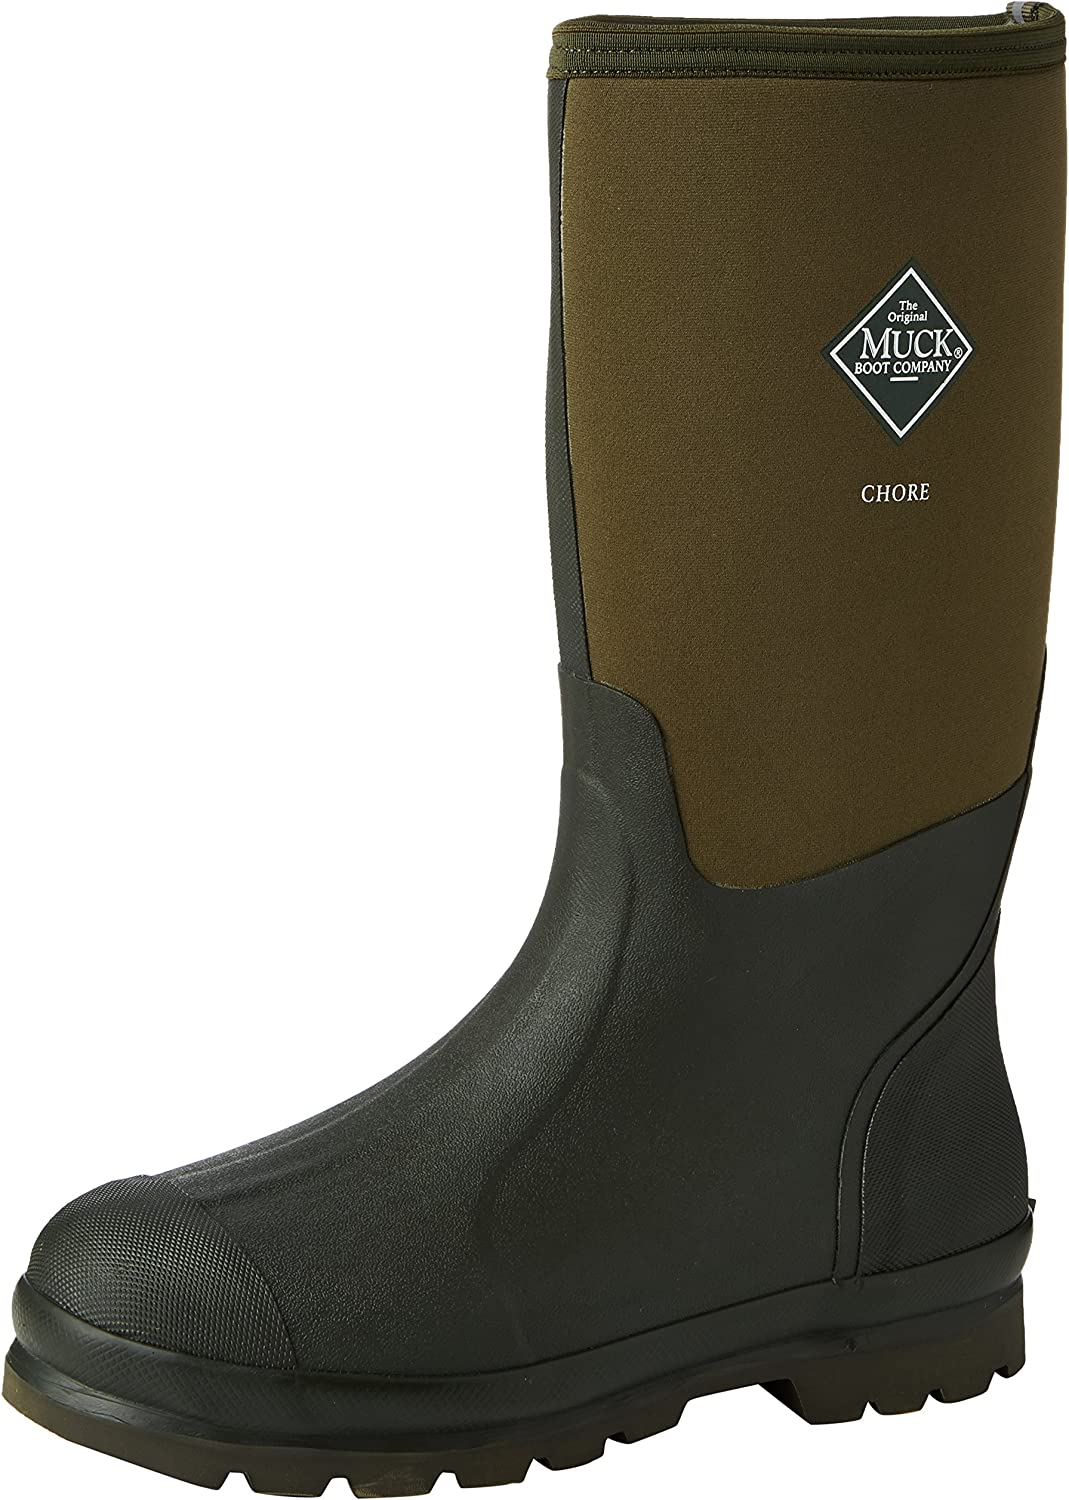 Muck Boots Chore Classic Hi Wellies UK 11 Moss